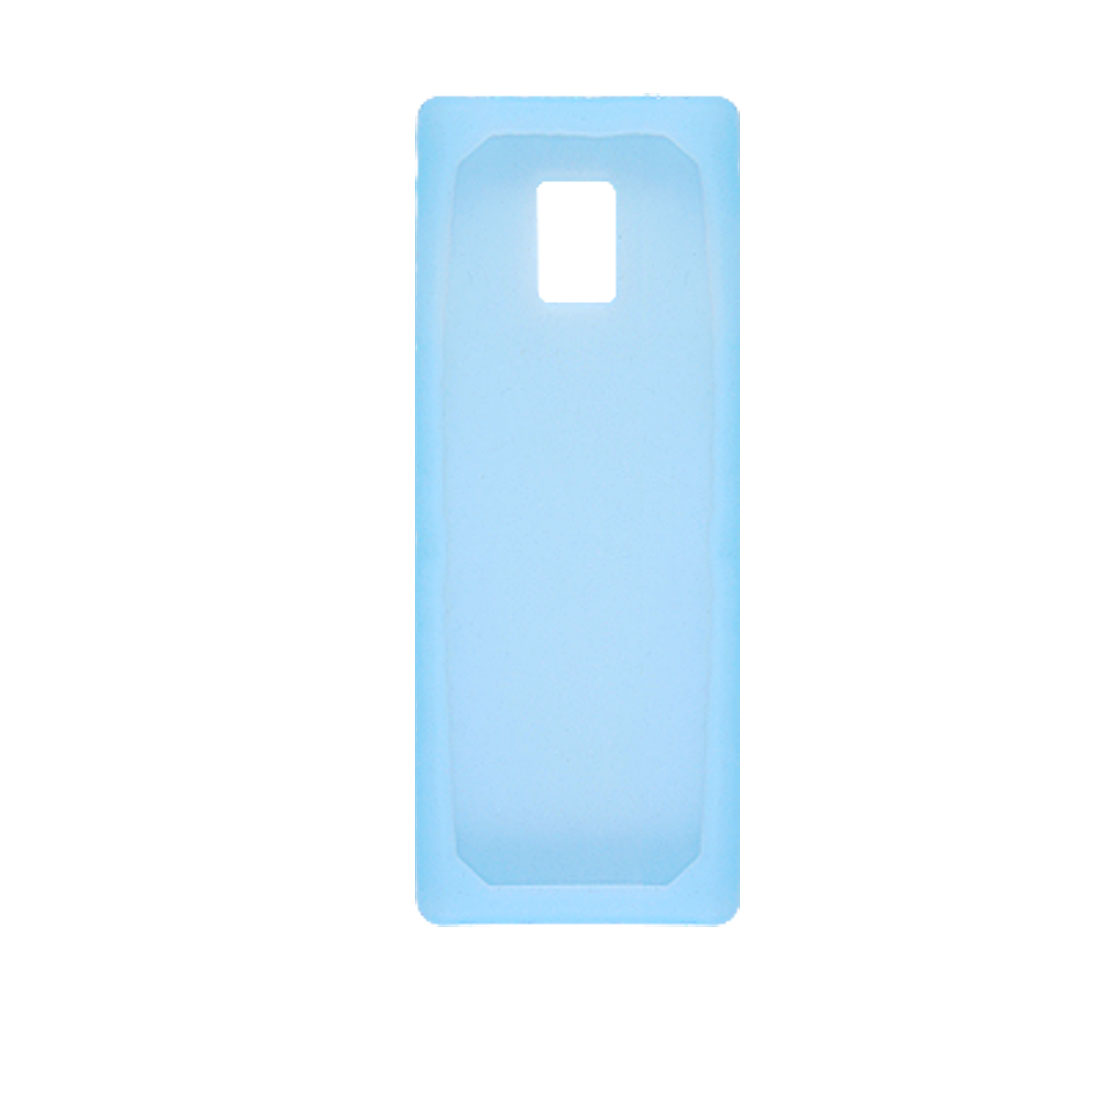 Compact Soft Silicone Cover for LG BL40e - Light Blue